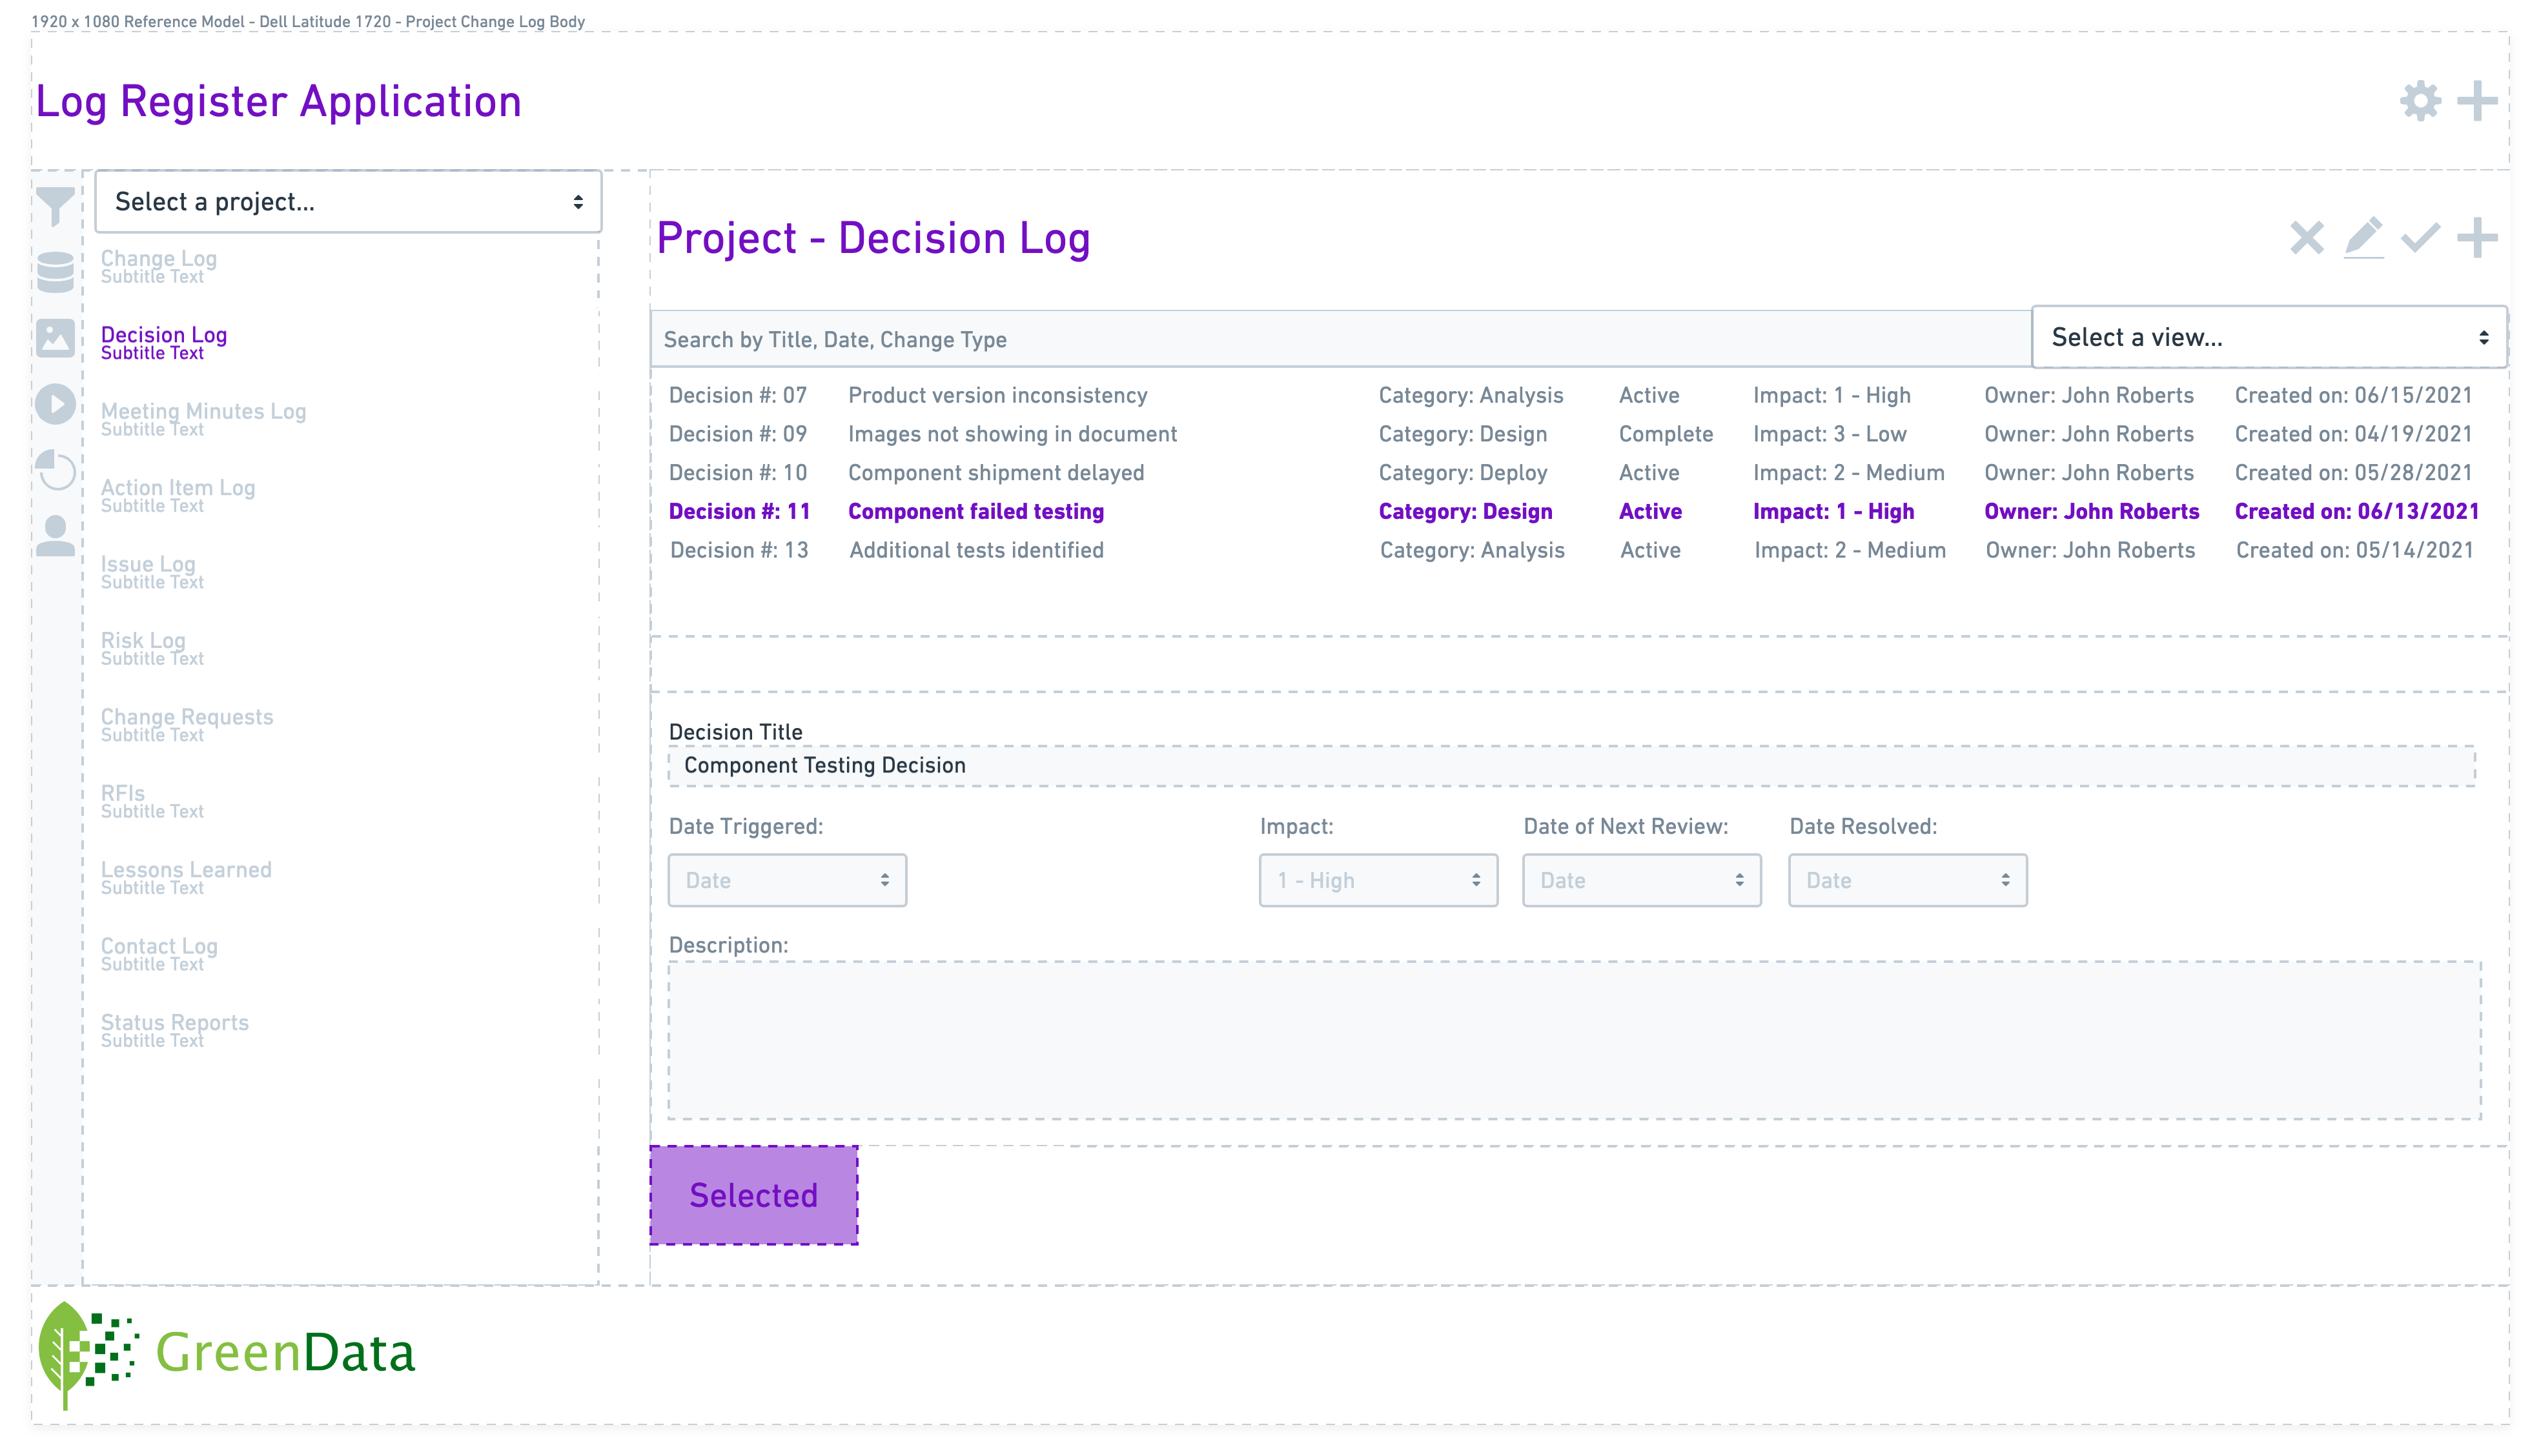 GreenData Power App for tracking project decisions